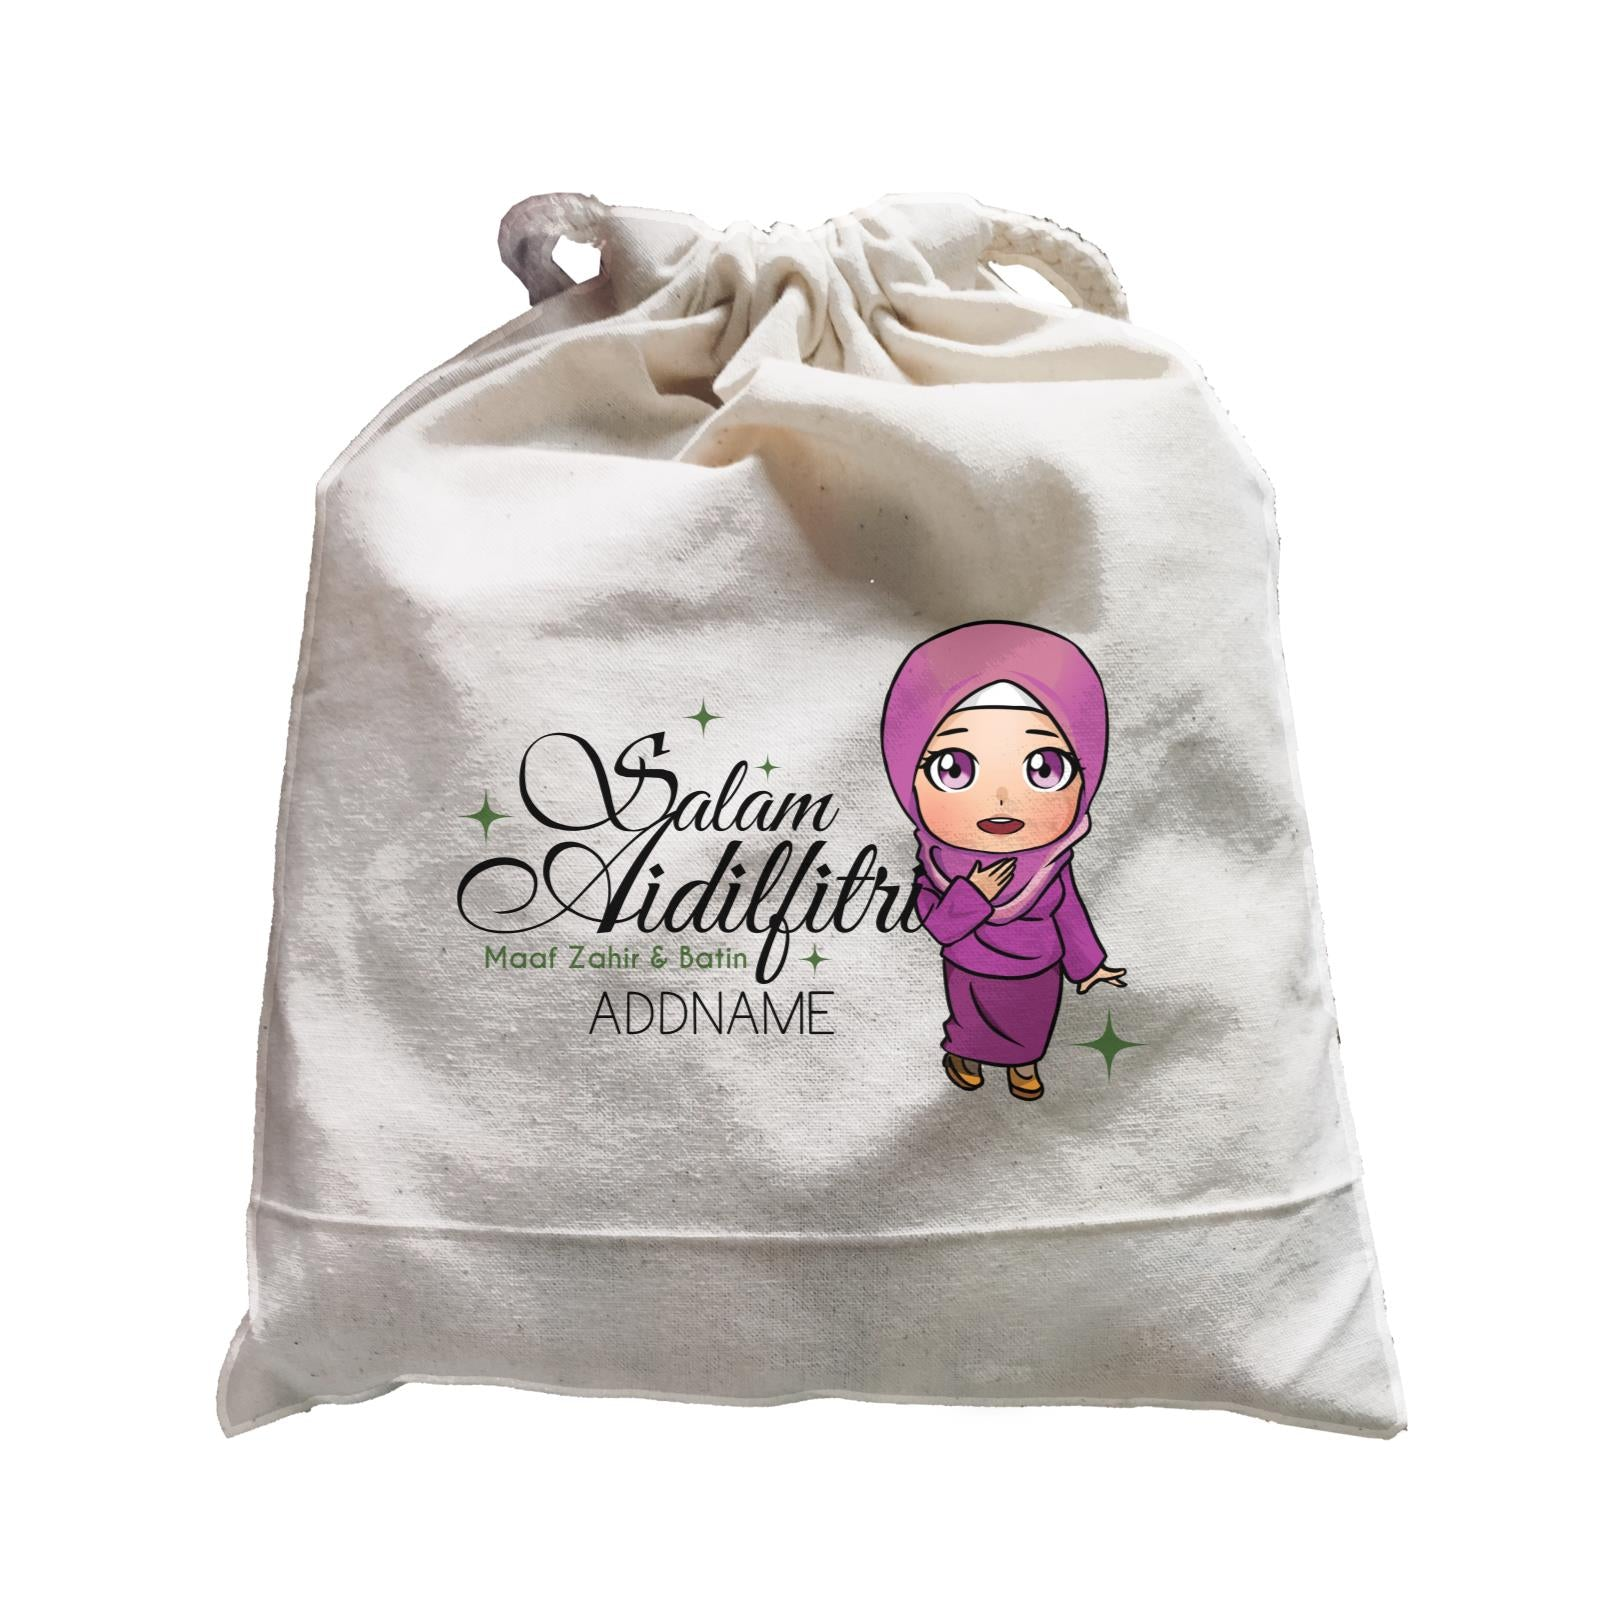 Raya Chibi Wishes Woman Addname Wishes Everyone Salam Aidilfitri Maaf Zahir & Batin Accessories Satchel